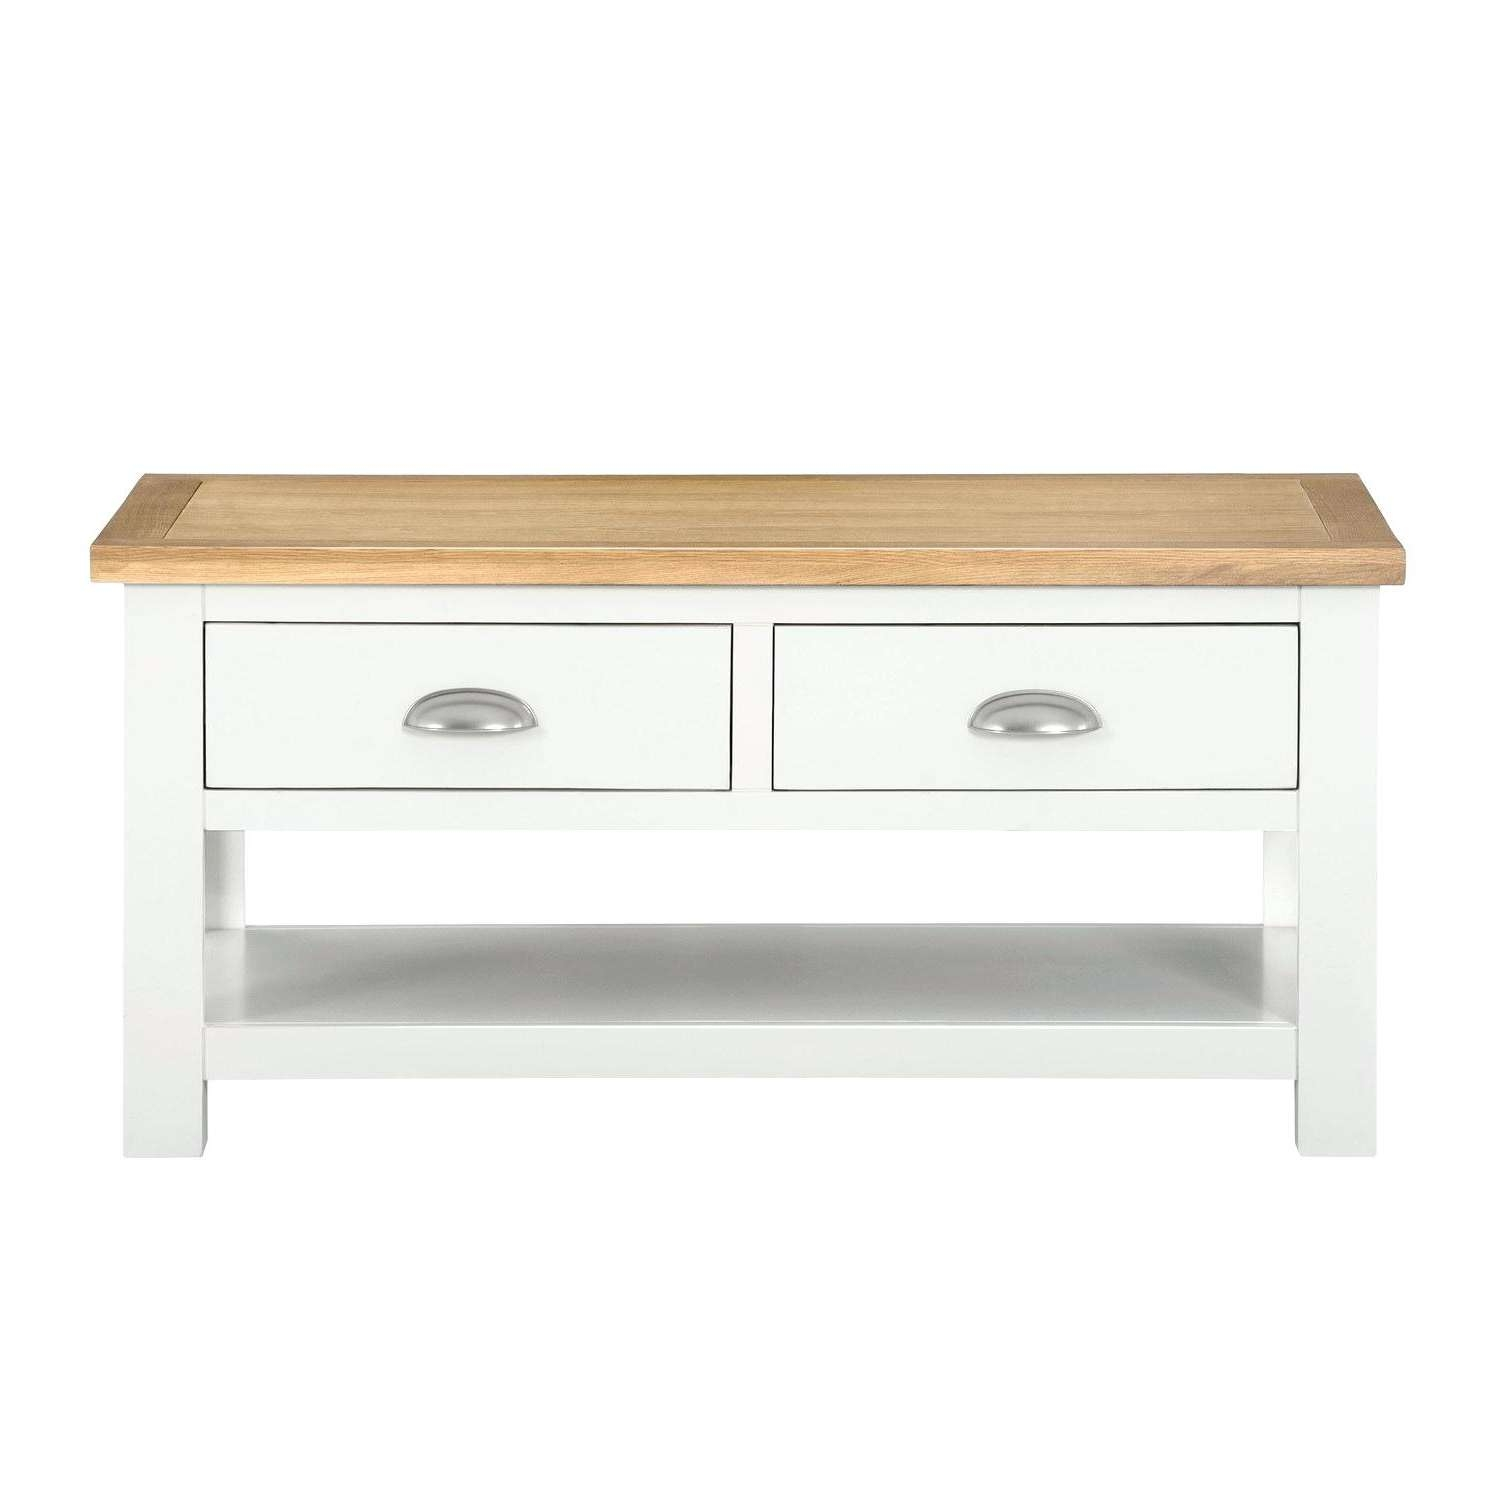 Famous Oak And Cream Coffee Tables Pertaining To Cream And Oak Coffee Table Somerset Oak And Cream Coffee Table (View 8 of 20)